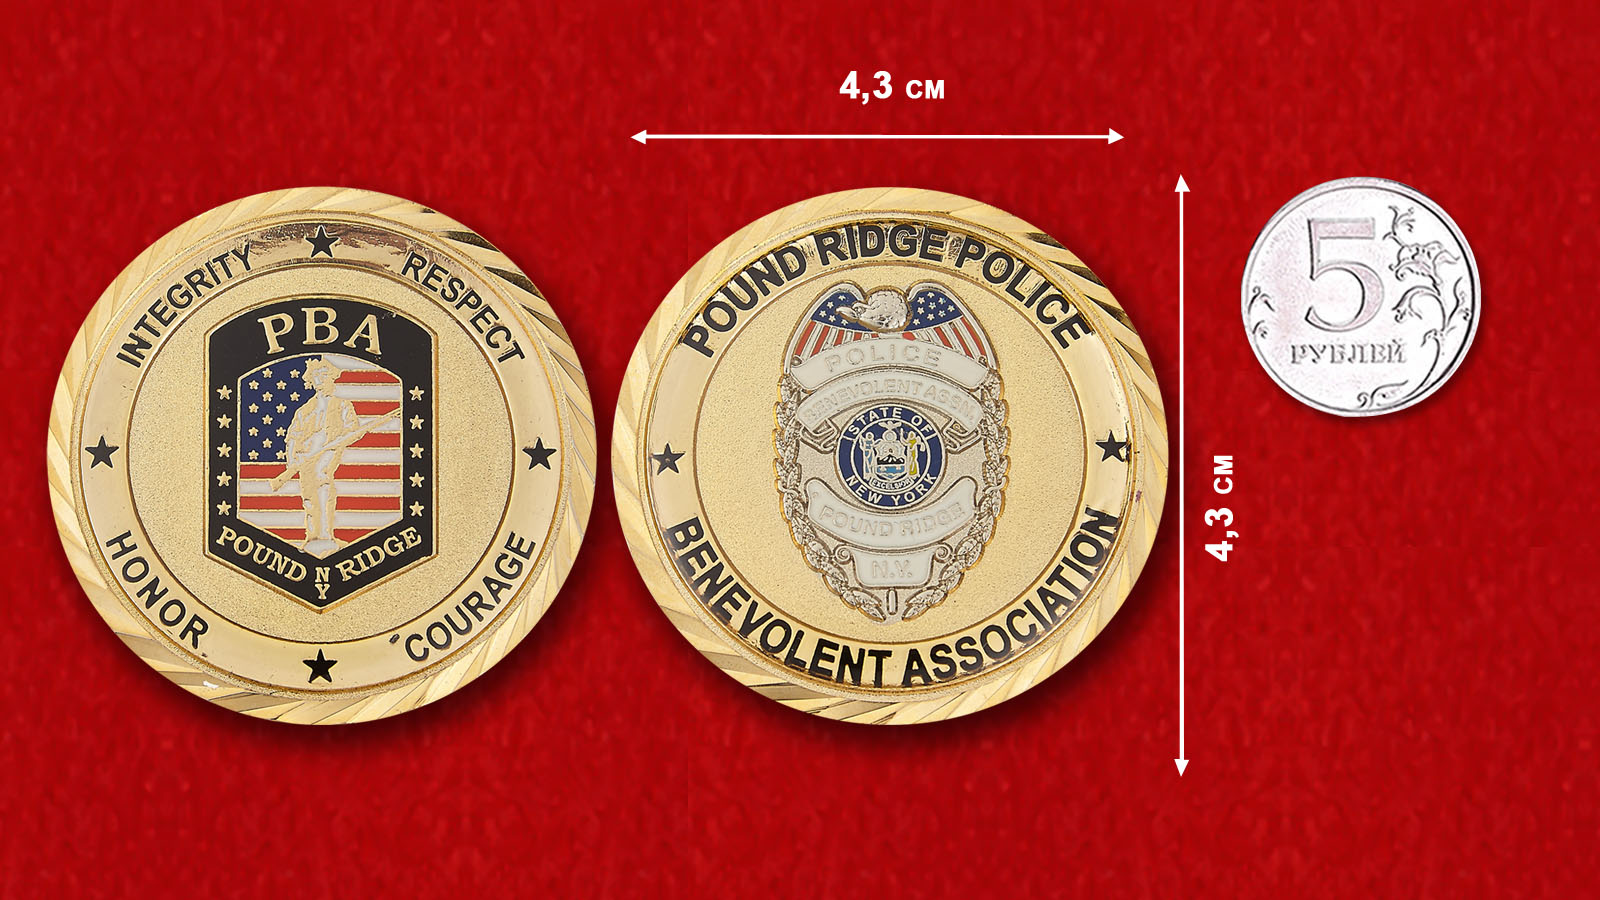 Police Benevolent Association Pound Ridge - comparative size